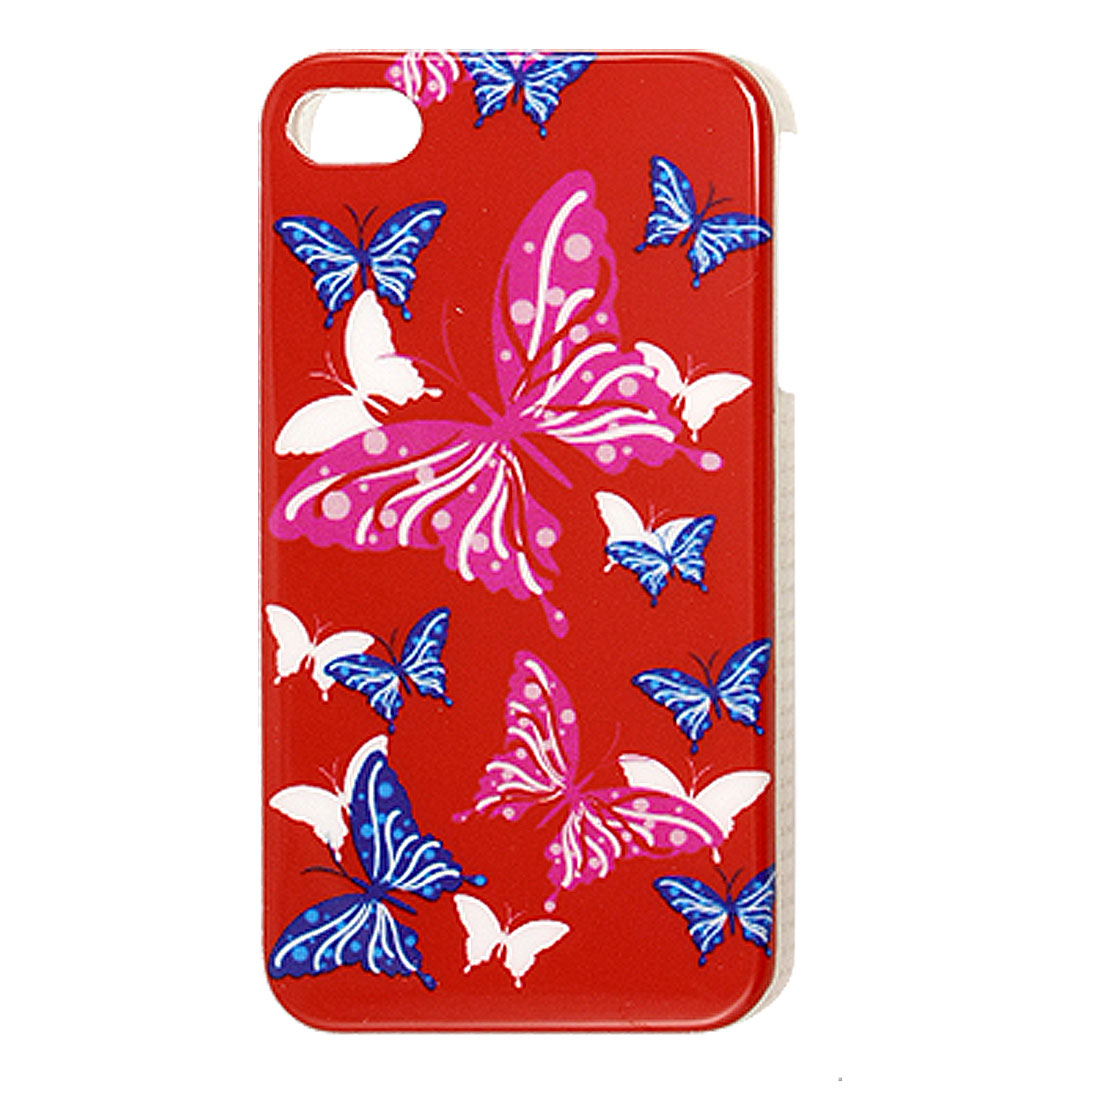 Butterfly Printed Red Plastic IMD Back Cover Case for iPhone 4 4G 4S